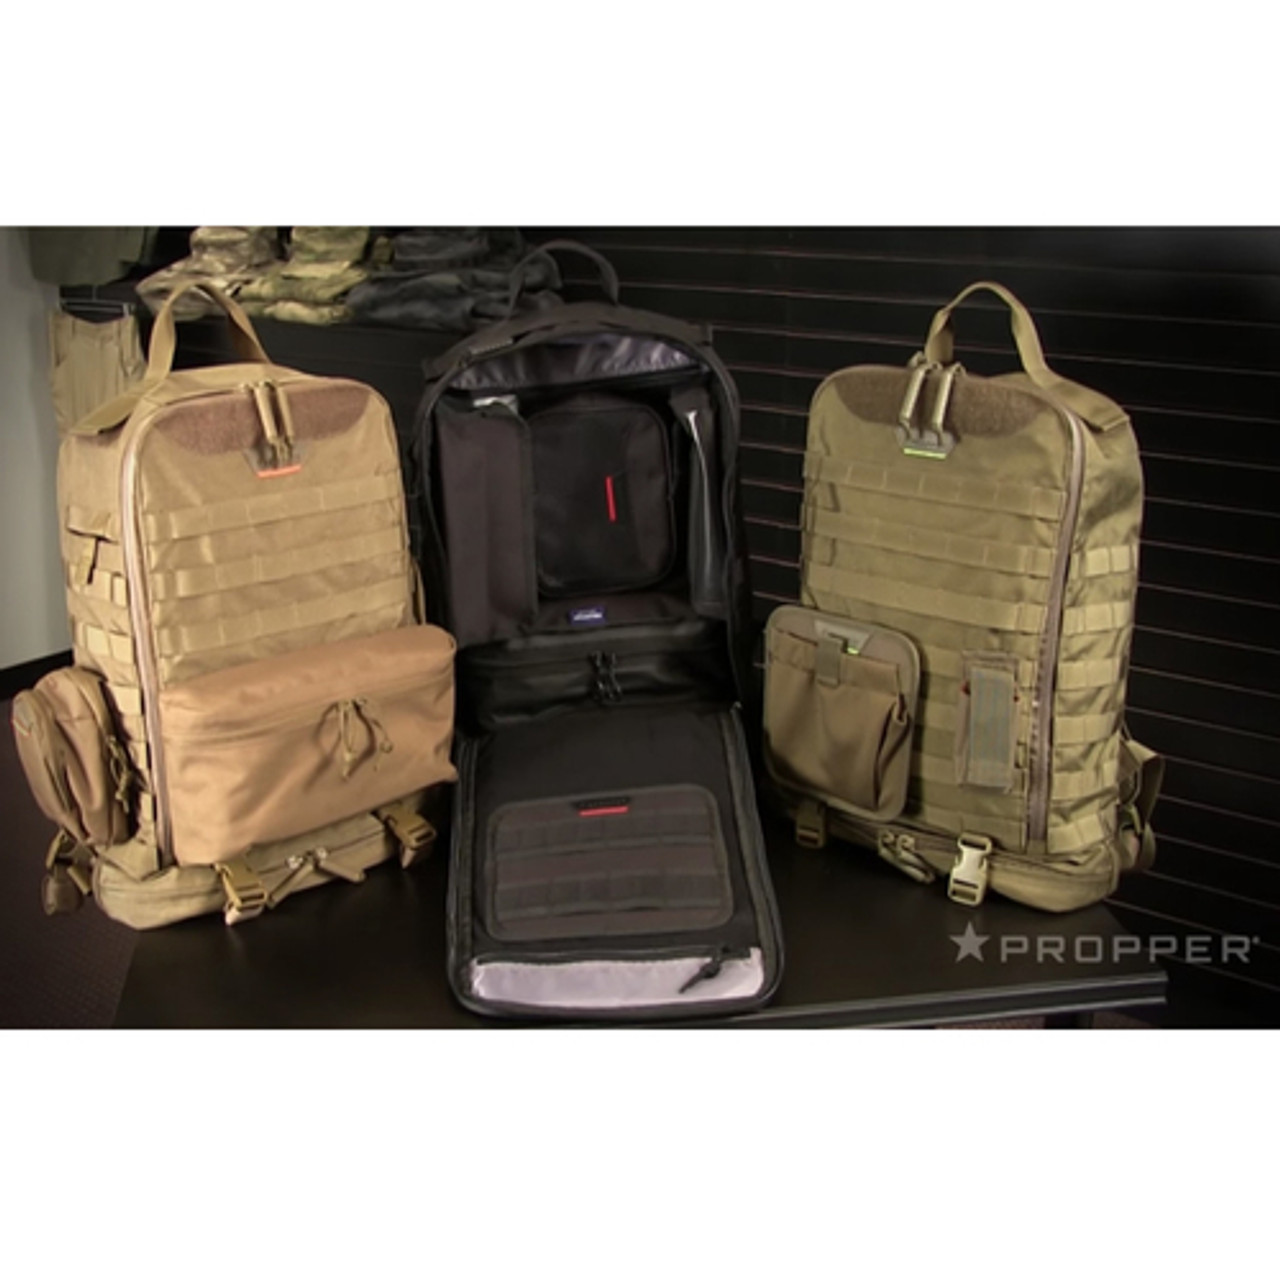 Propper® U.C. Tactical Backack, padded adjustable shoulder straps and sternum strap, available in Black, Coyote Brown and Olive Green, F5608